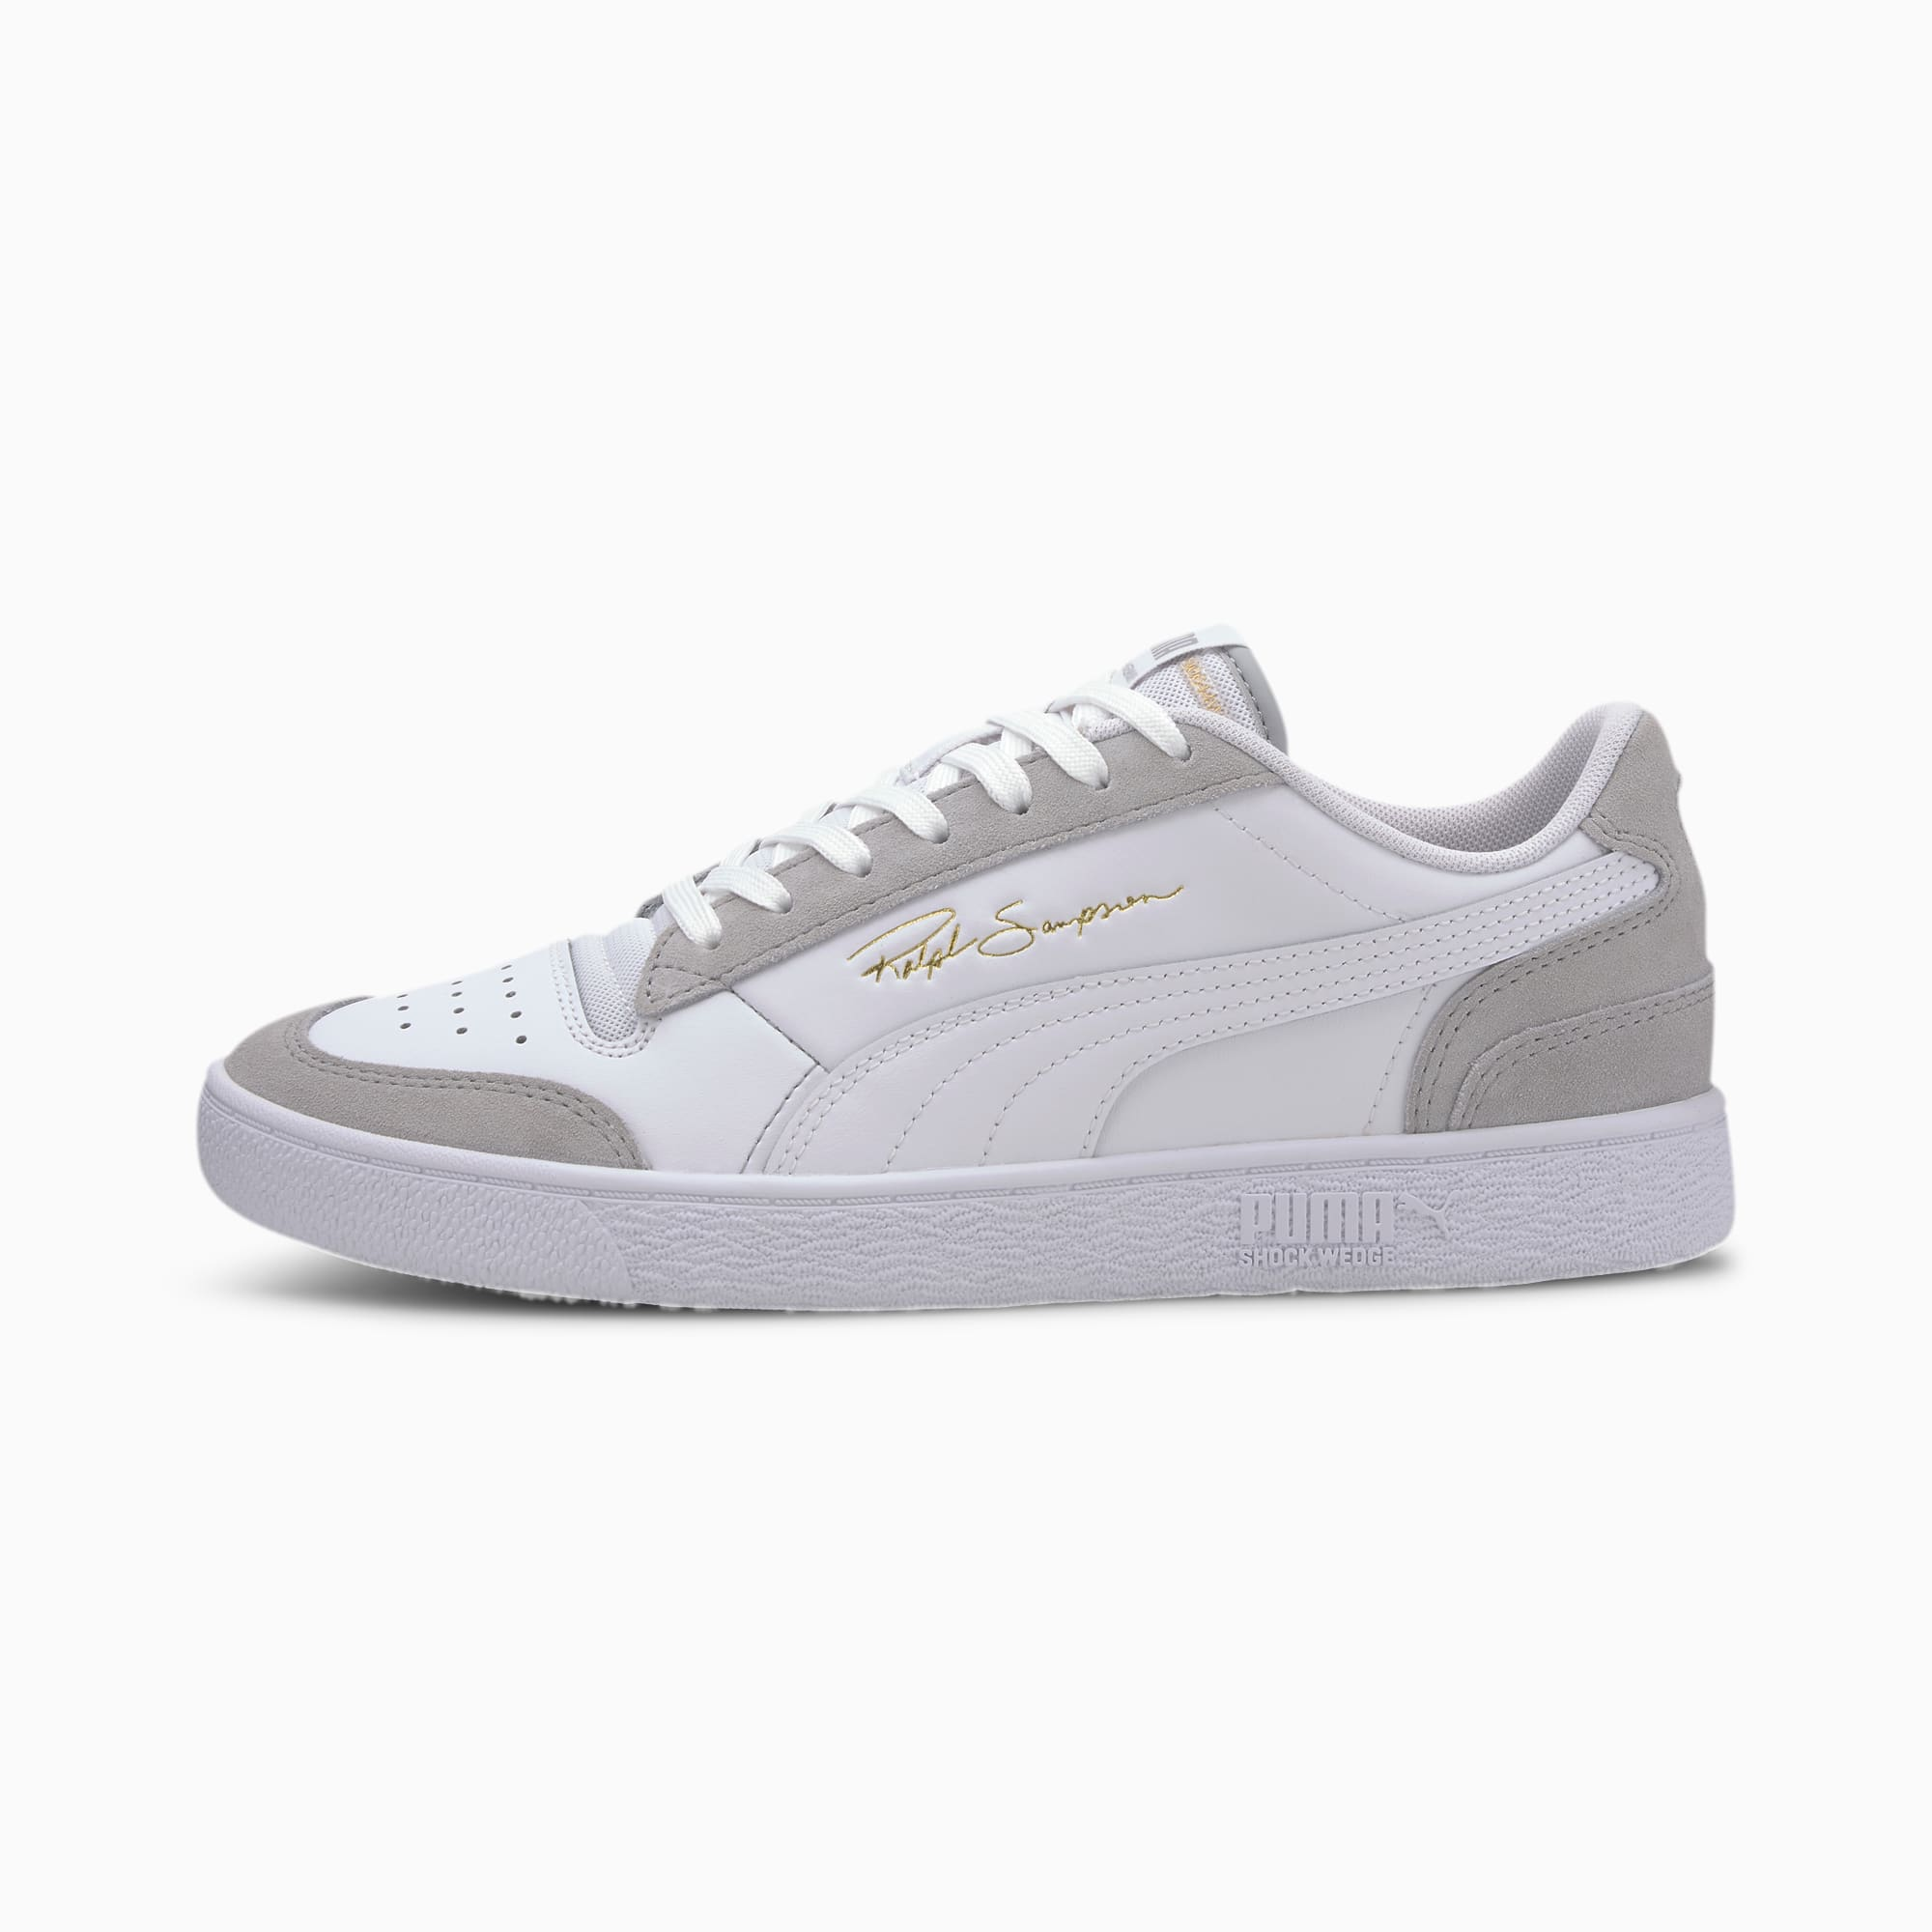 chaussure basket ralph sampson lo vintage, blanc/gris, taille 37, chaussures